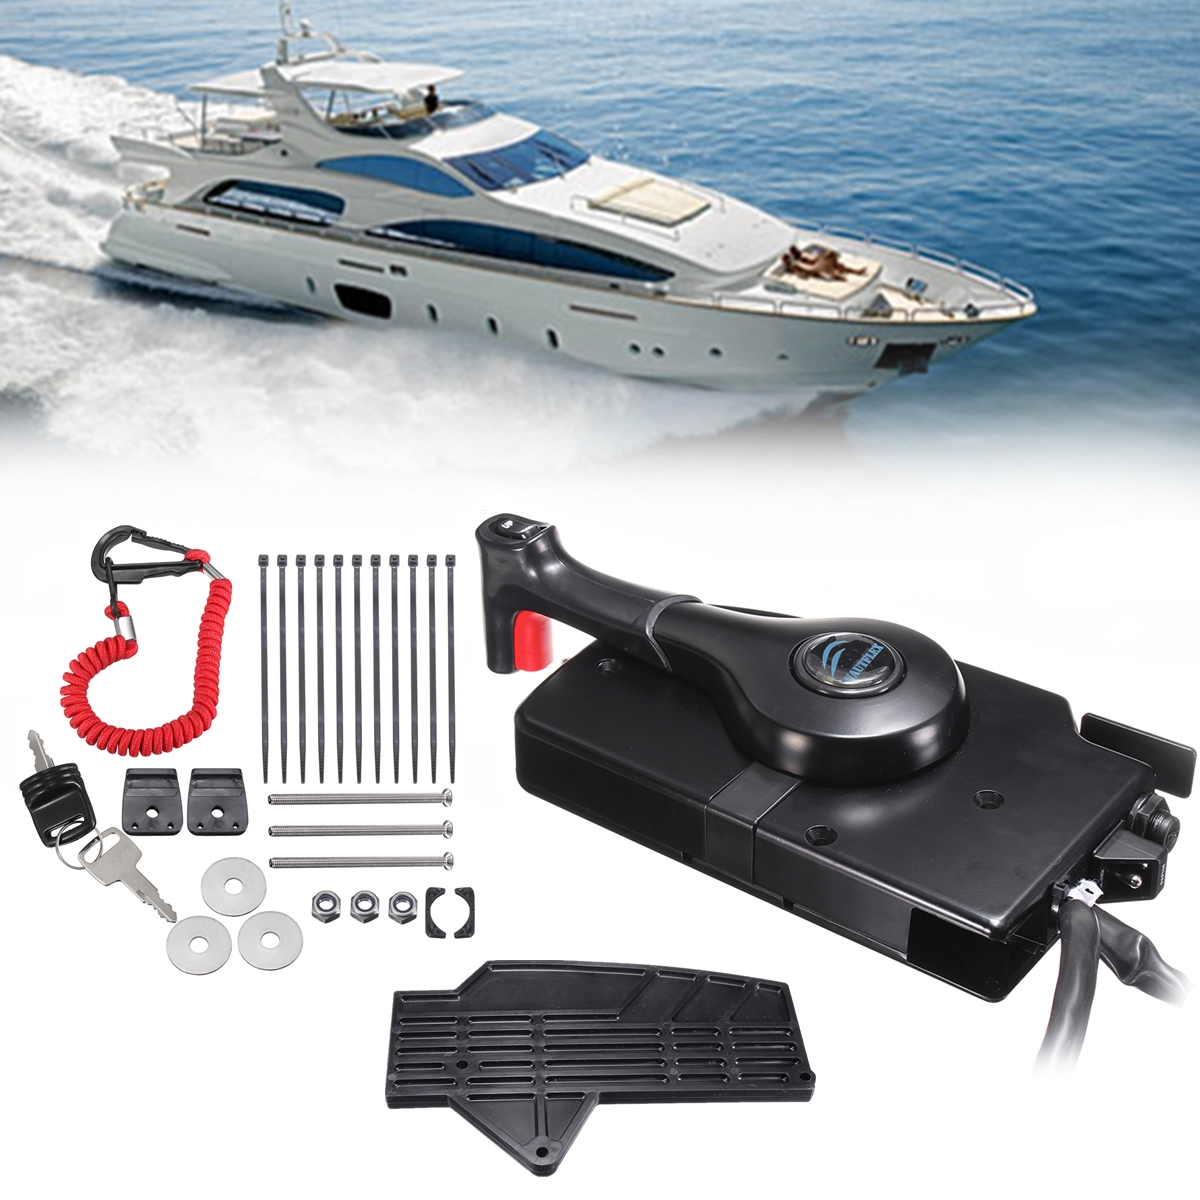 With 14 Pin Cable Boat Outboard Engine Side Mount Remote Control Box for Mercury Include Up/Down switch Forward/reverse Lever